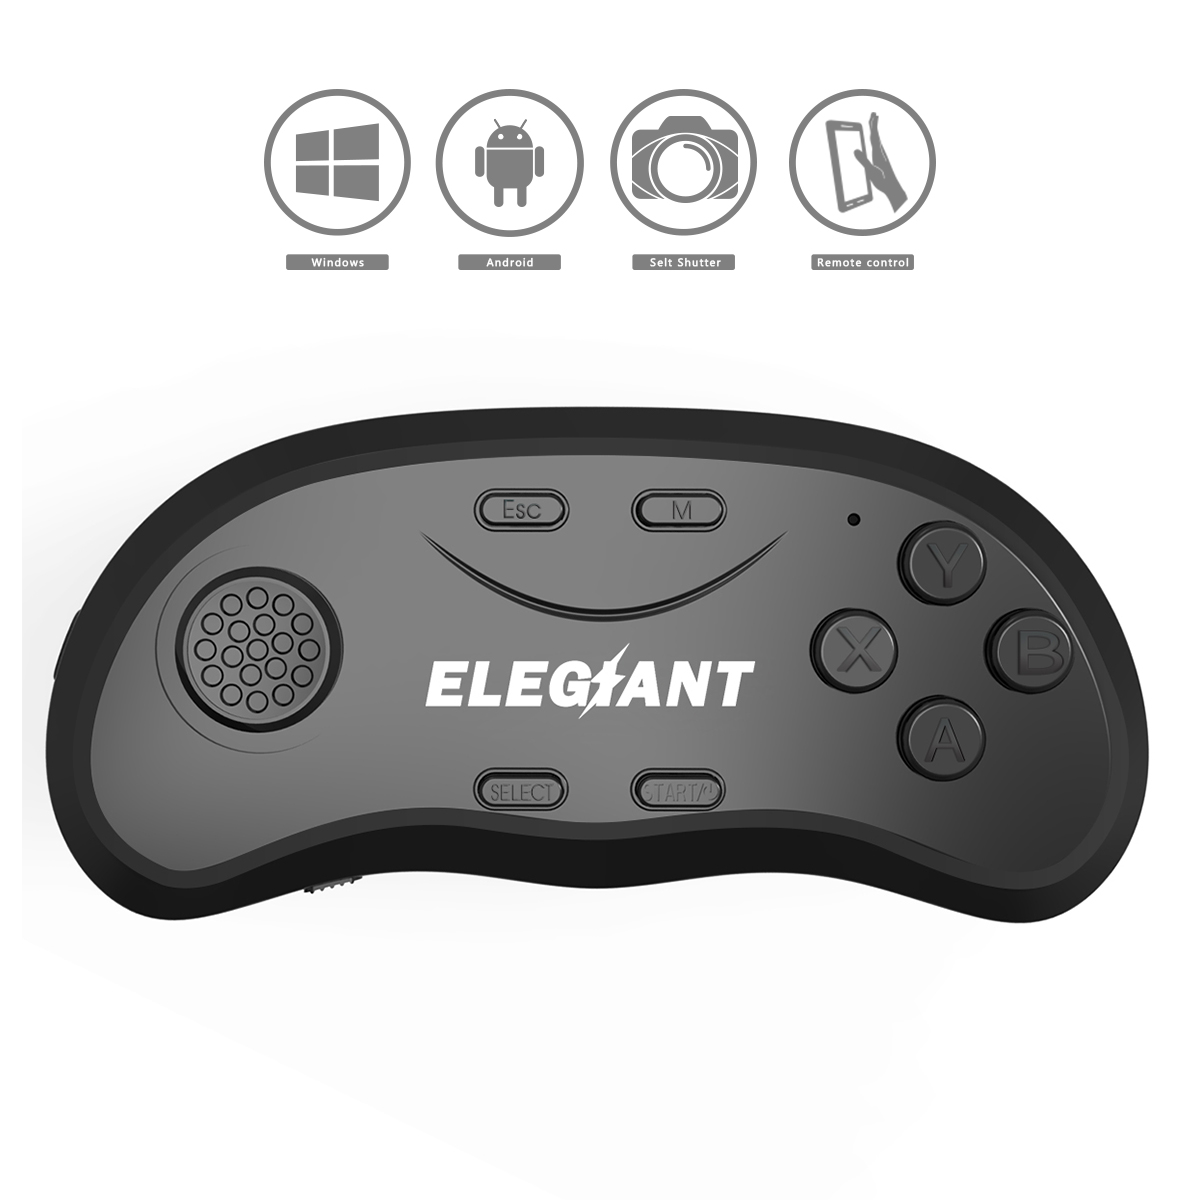 ELEGIANT 2 Generation bluetooth 3.0 <font><b>VR</b></font> <font><b>Glasses</b></font> Remote Control Gamepad <font><b>For</b></font> Android IOS <font><b>PC</b></font> image